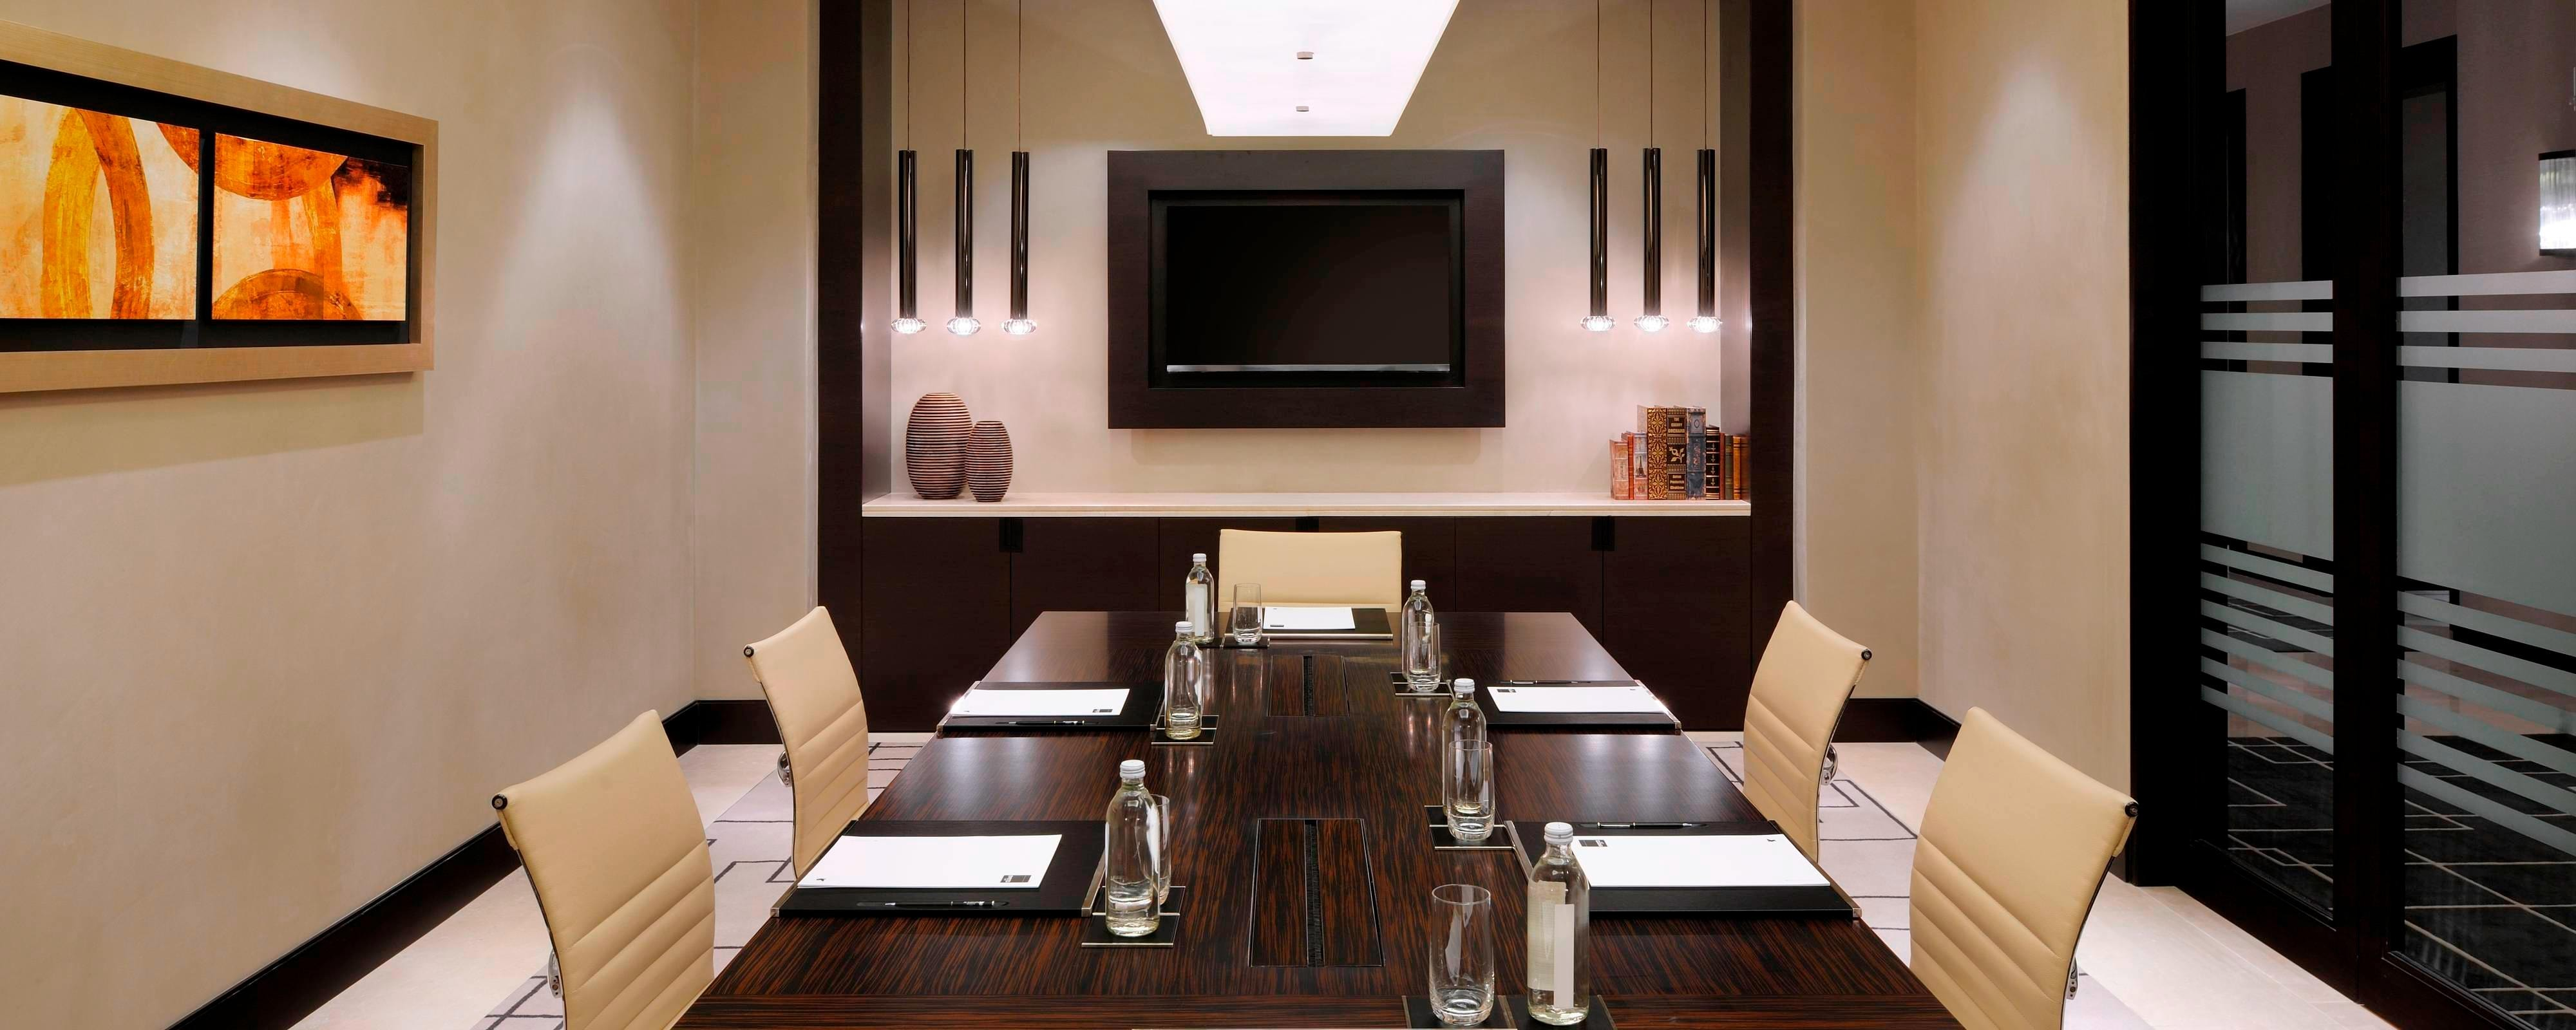 Meeting Rooms In Dubai Conference Venues Jw Marriott